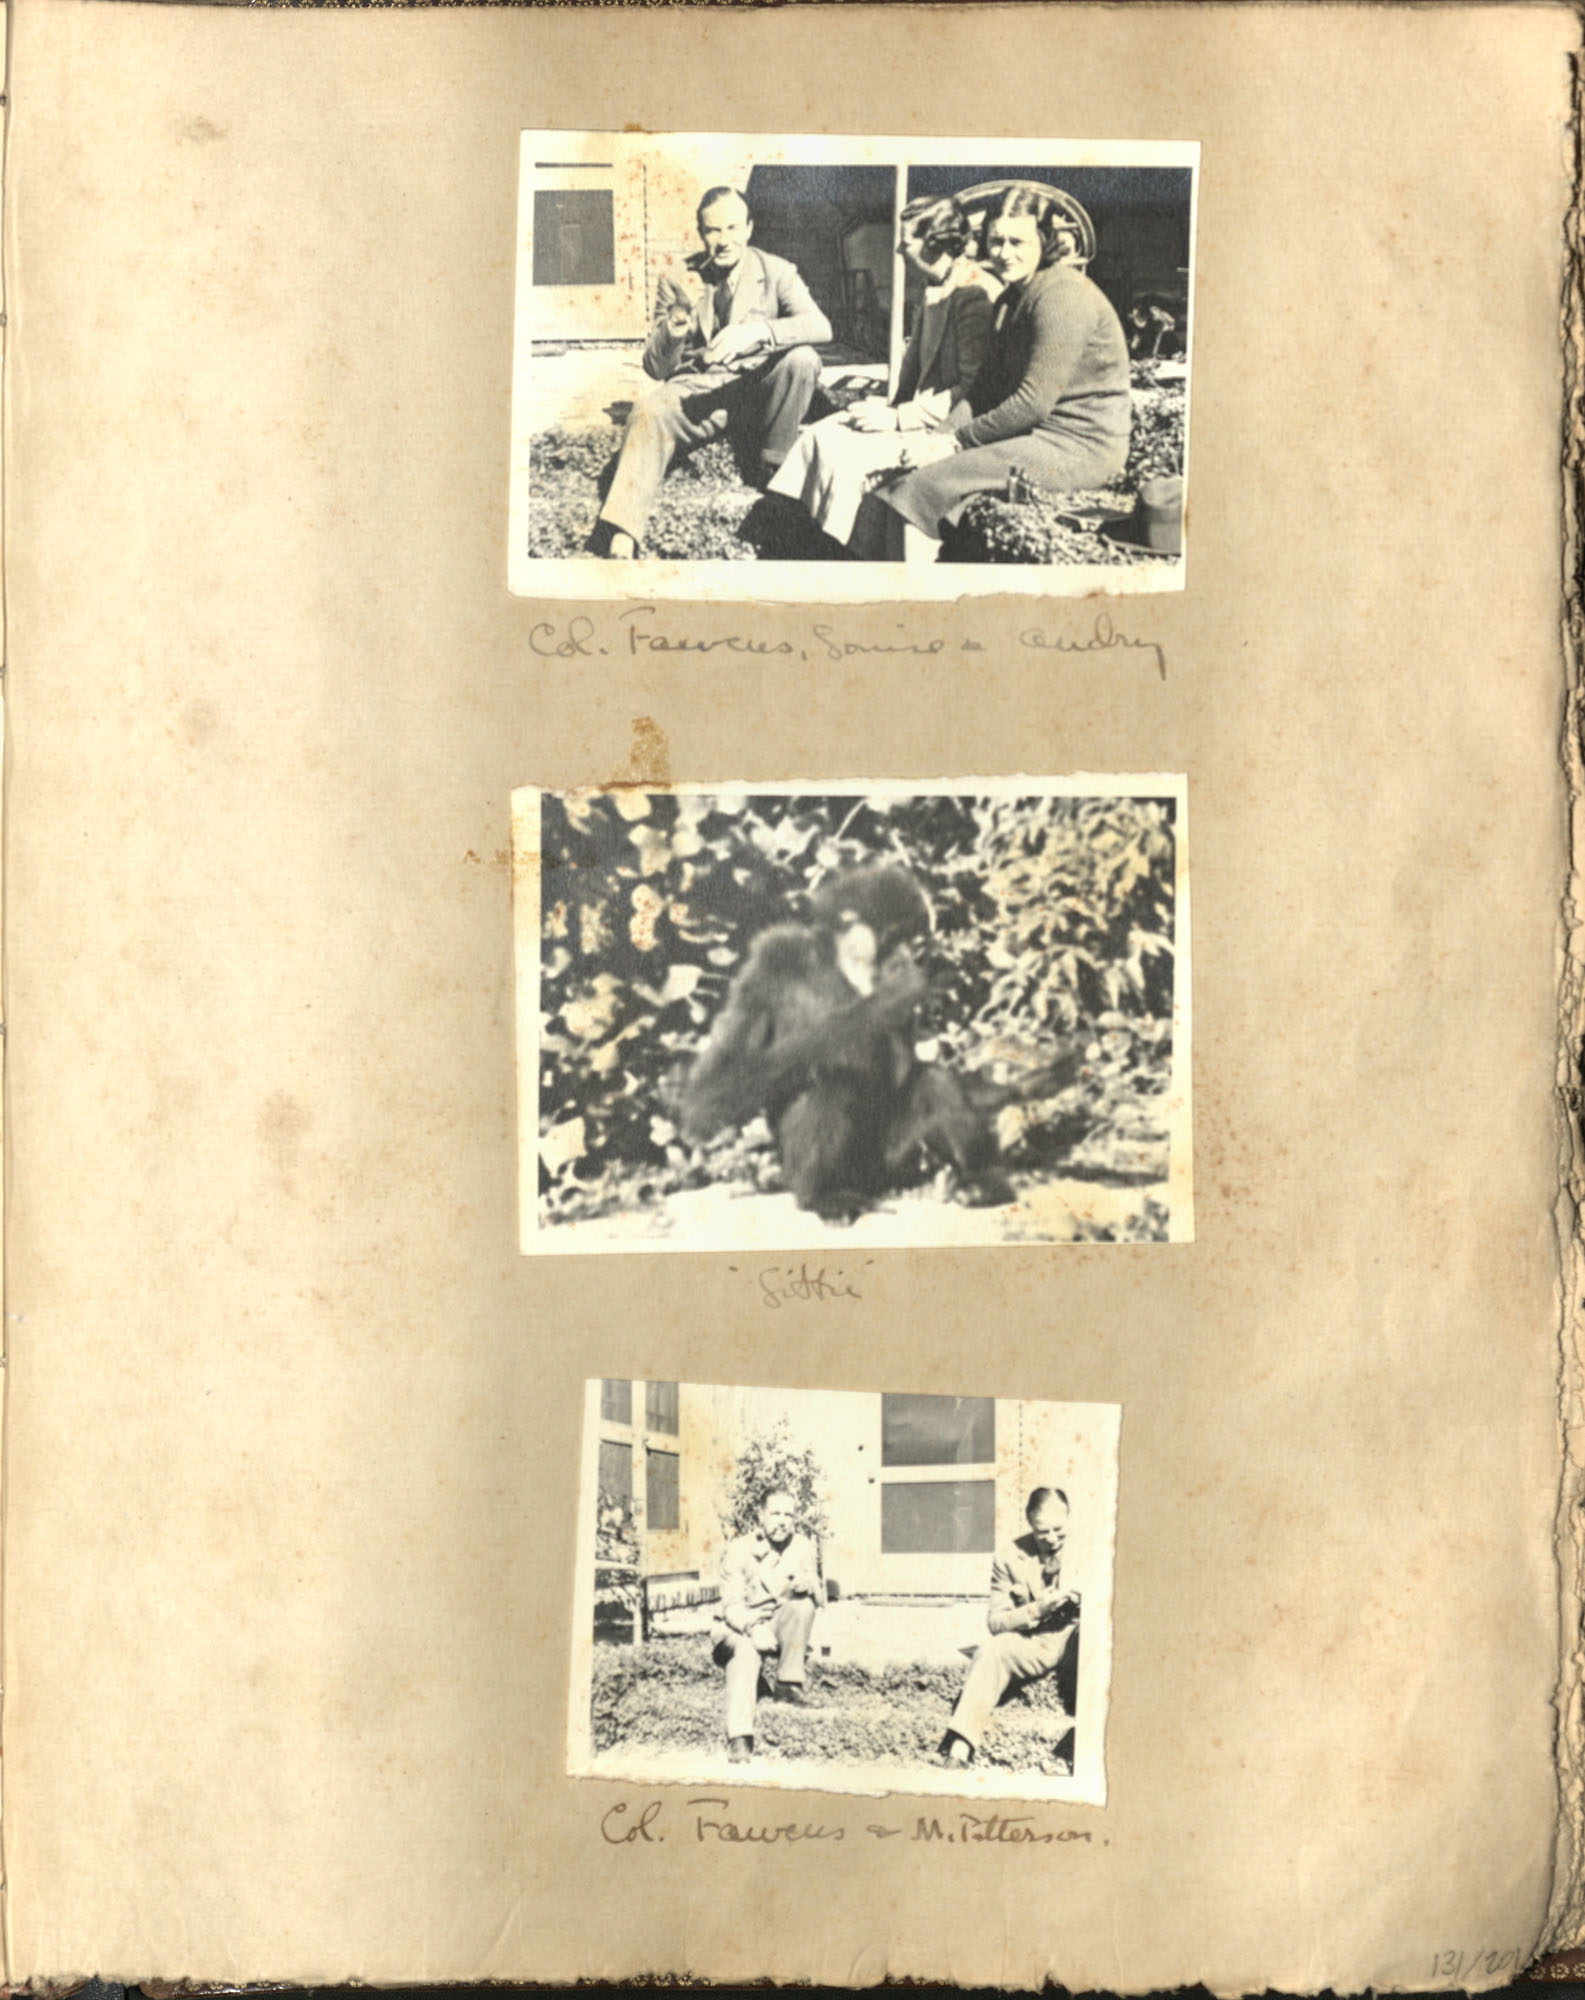 Early Medway and travels album, 1929-1937, page 131